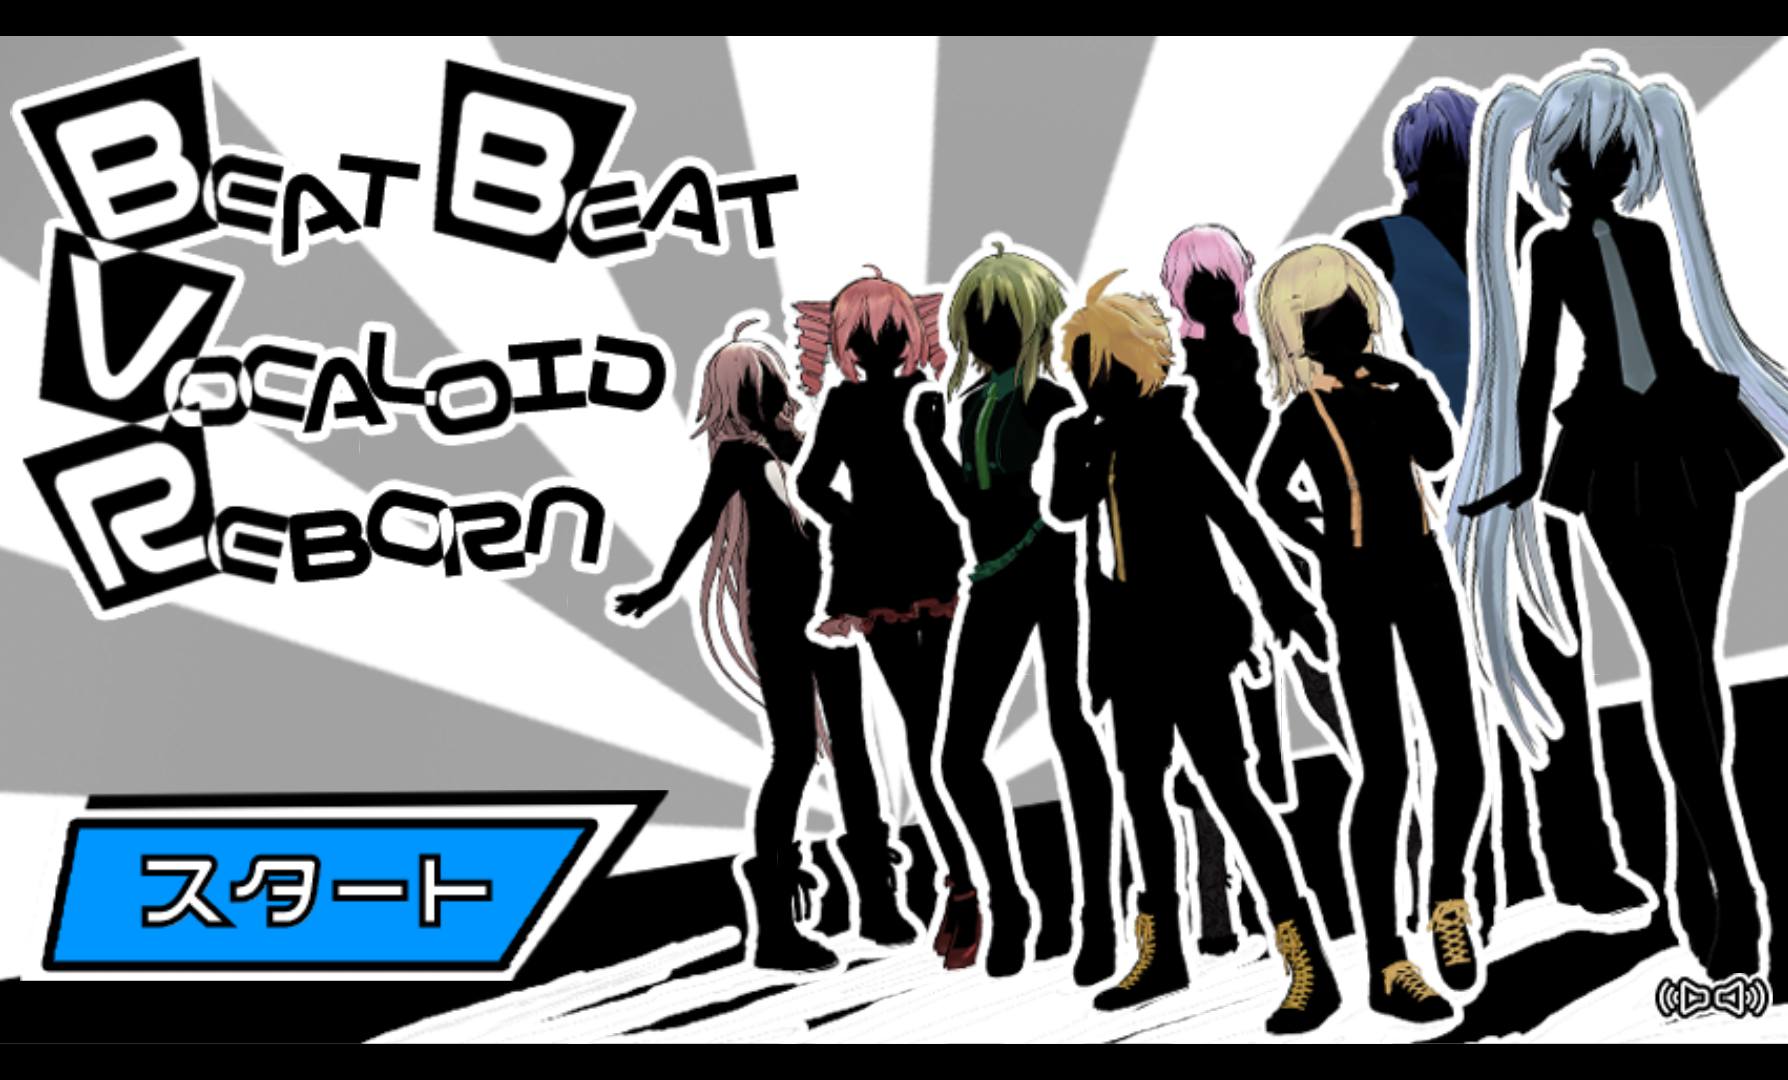 androidアプリ Beat Beat Vocaloid Reborn攻略スクリーンショット1